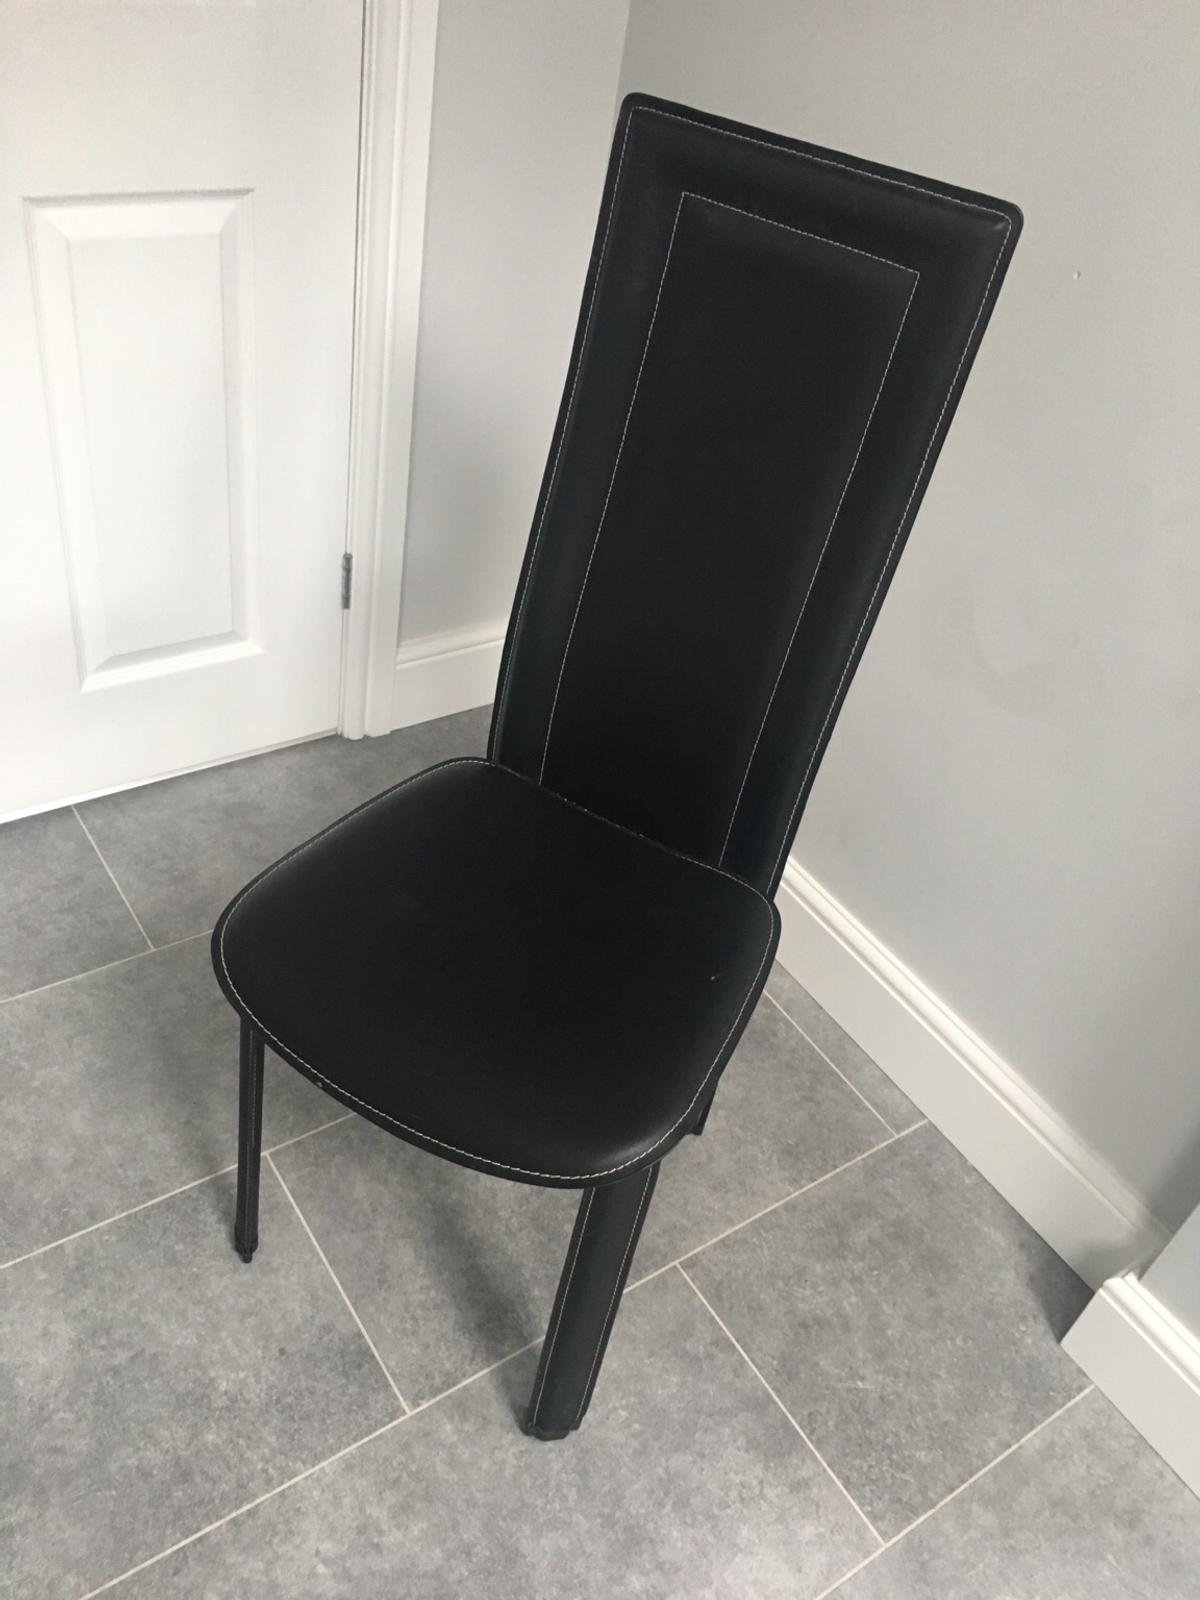 Furniture Village Dining Table And Chairs In Ts5 Middlesbrough For 120 00 For Sale Shpock